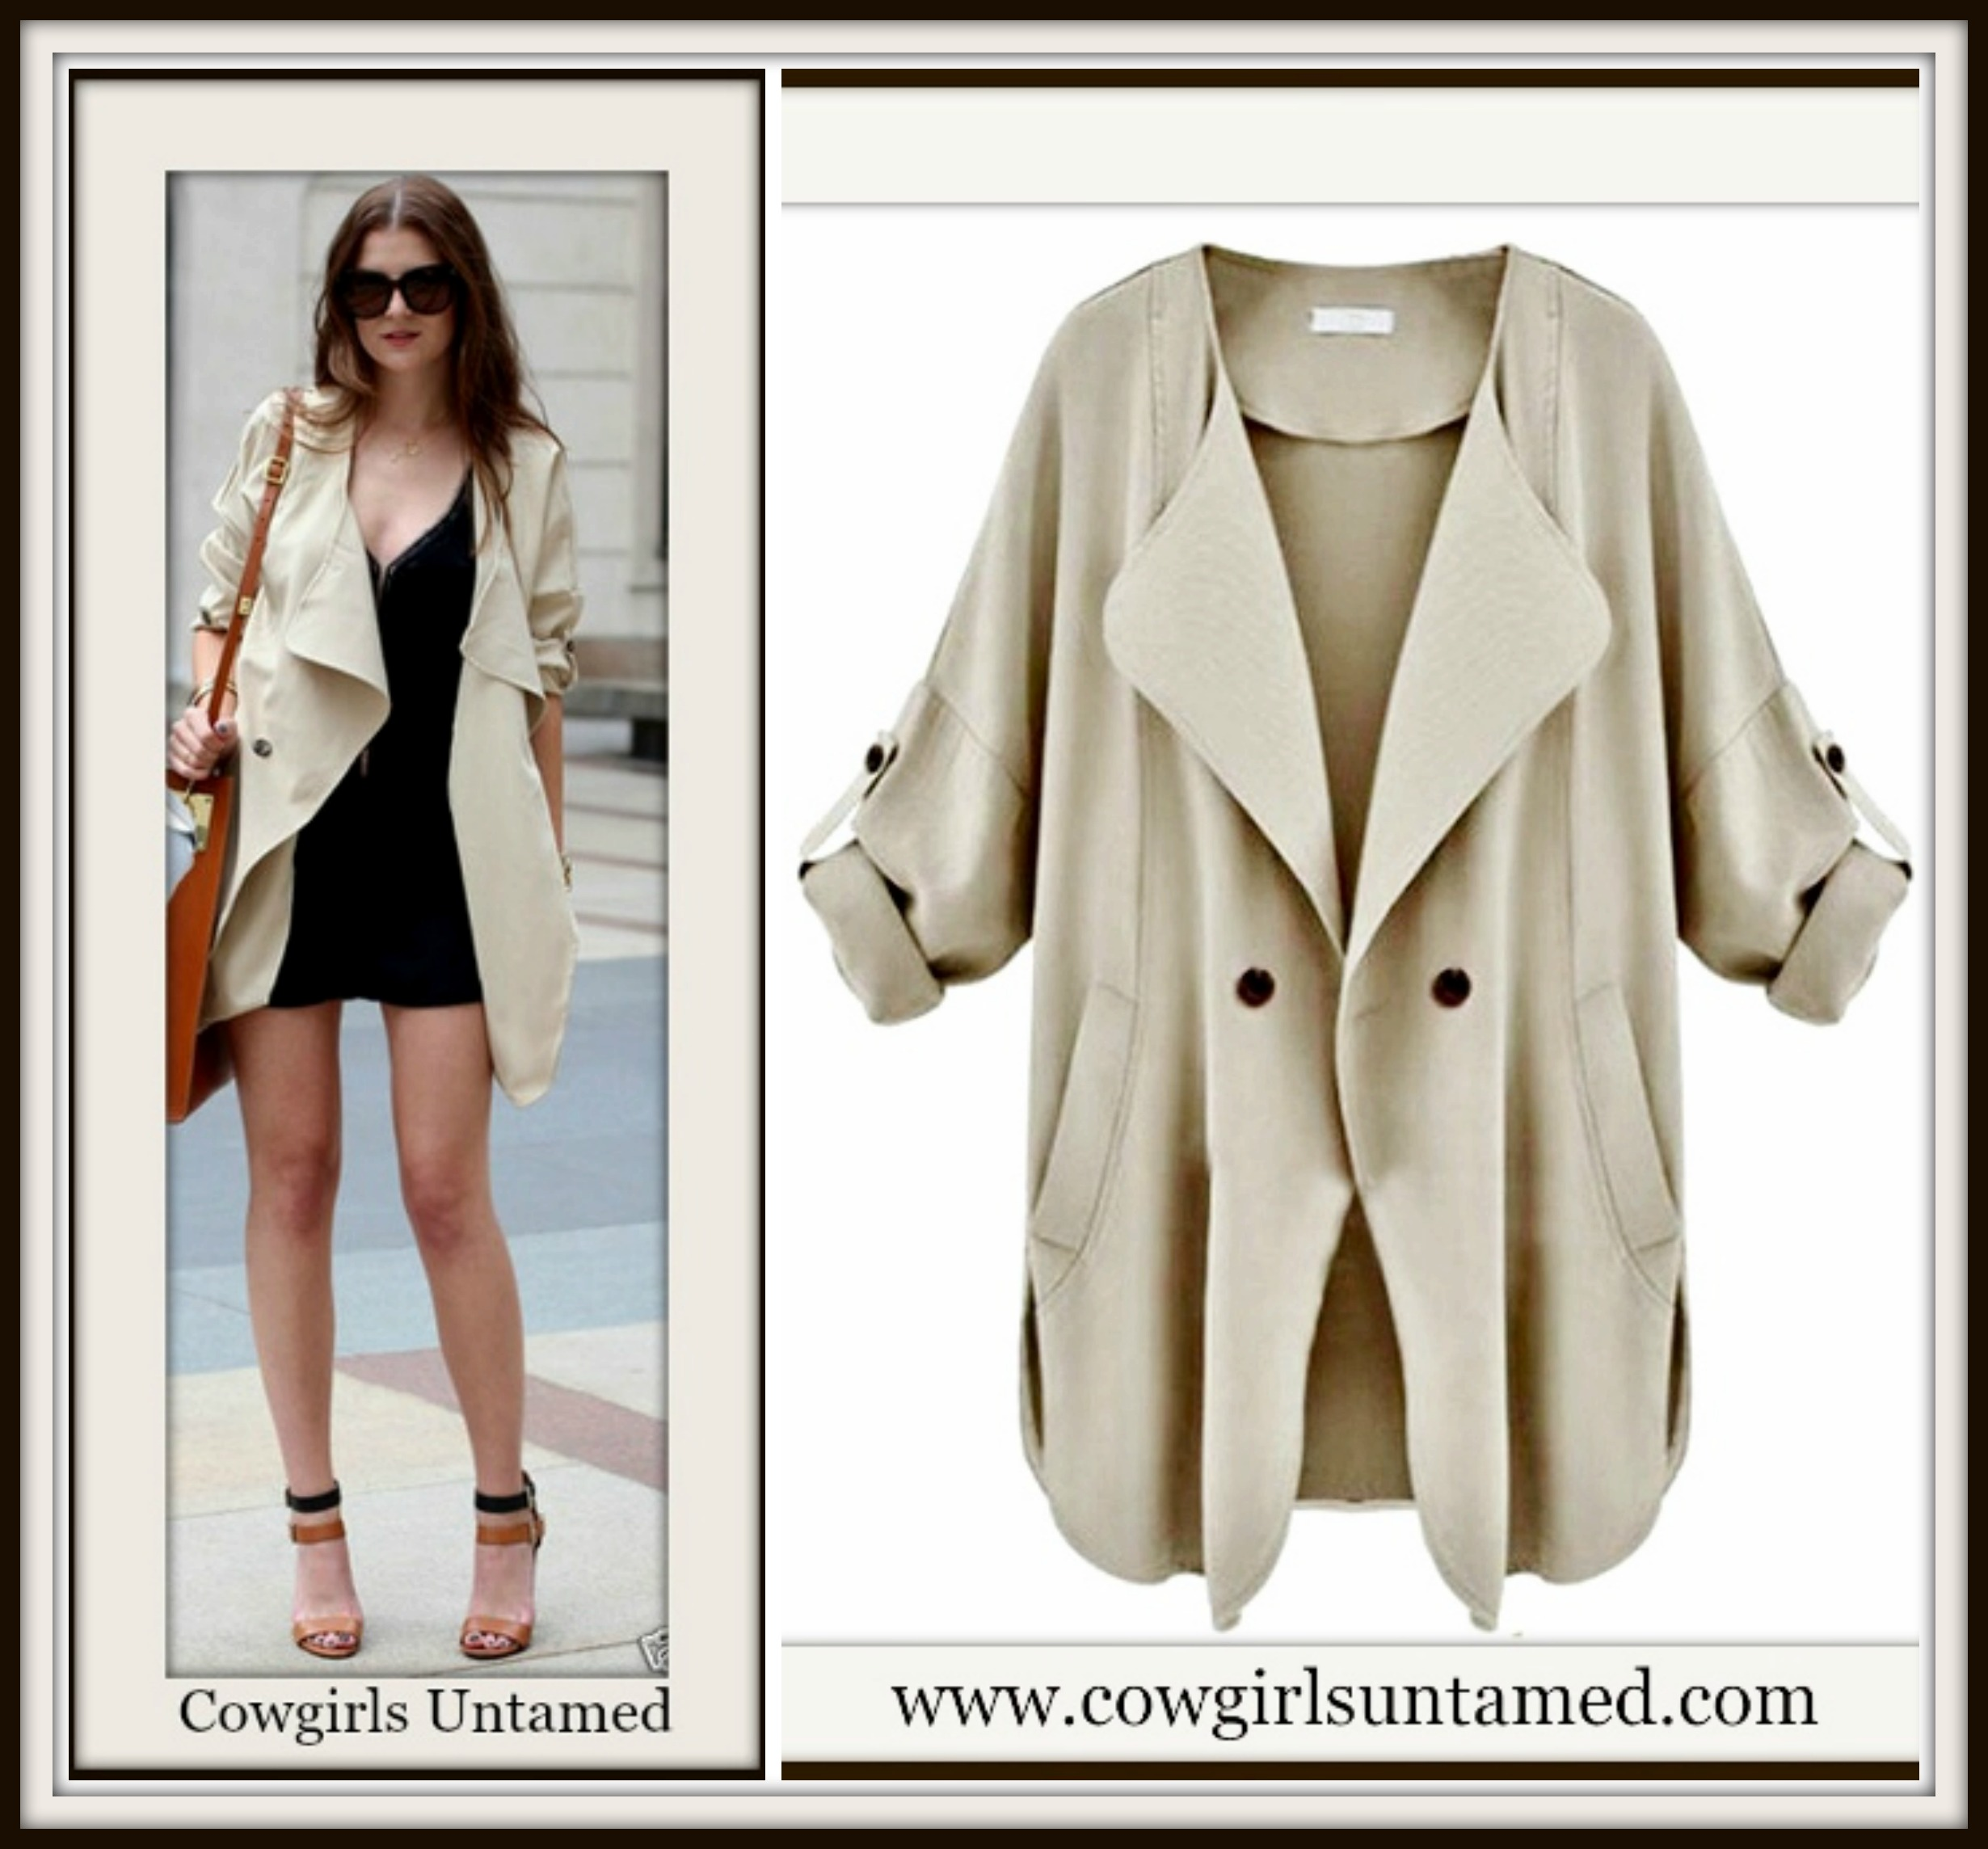 COWGIRL GLAM COAT Khaki Open Flowy Trench Coat